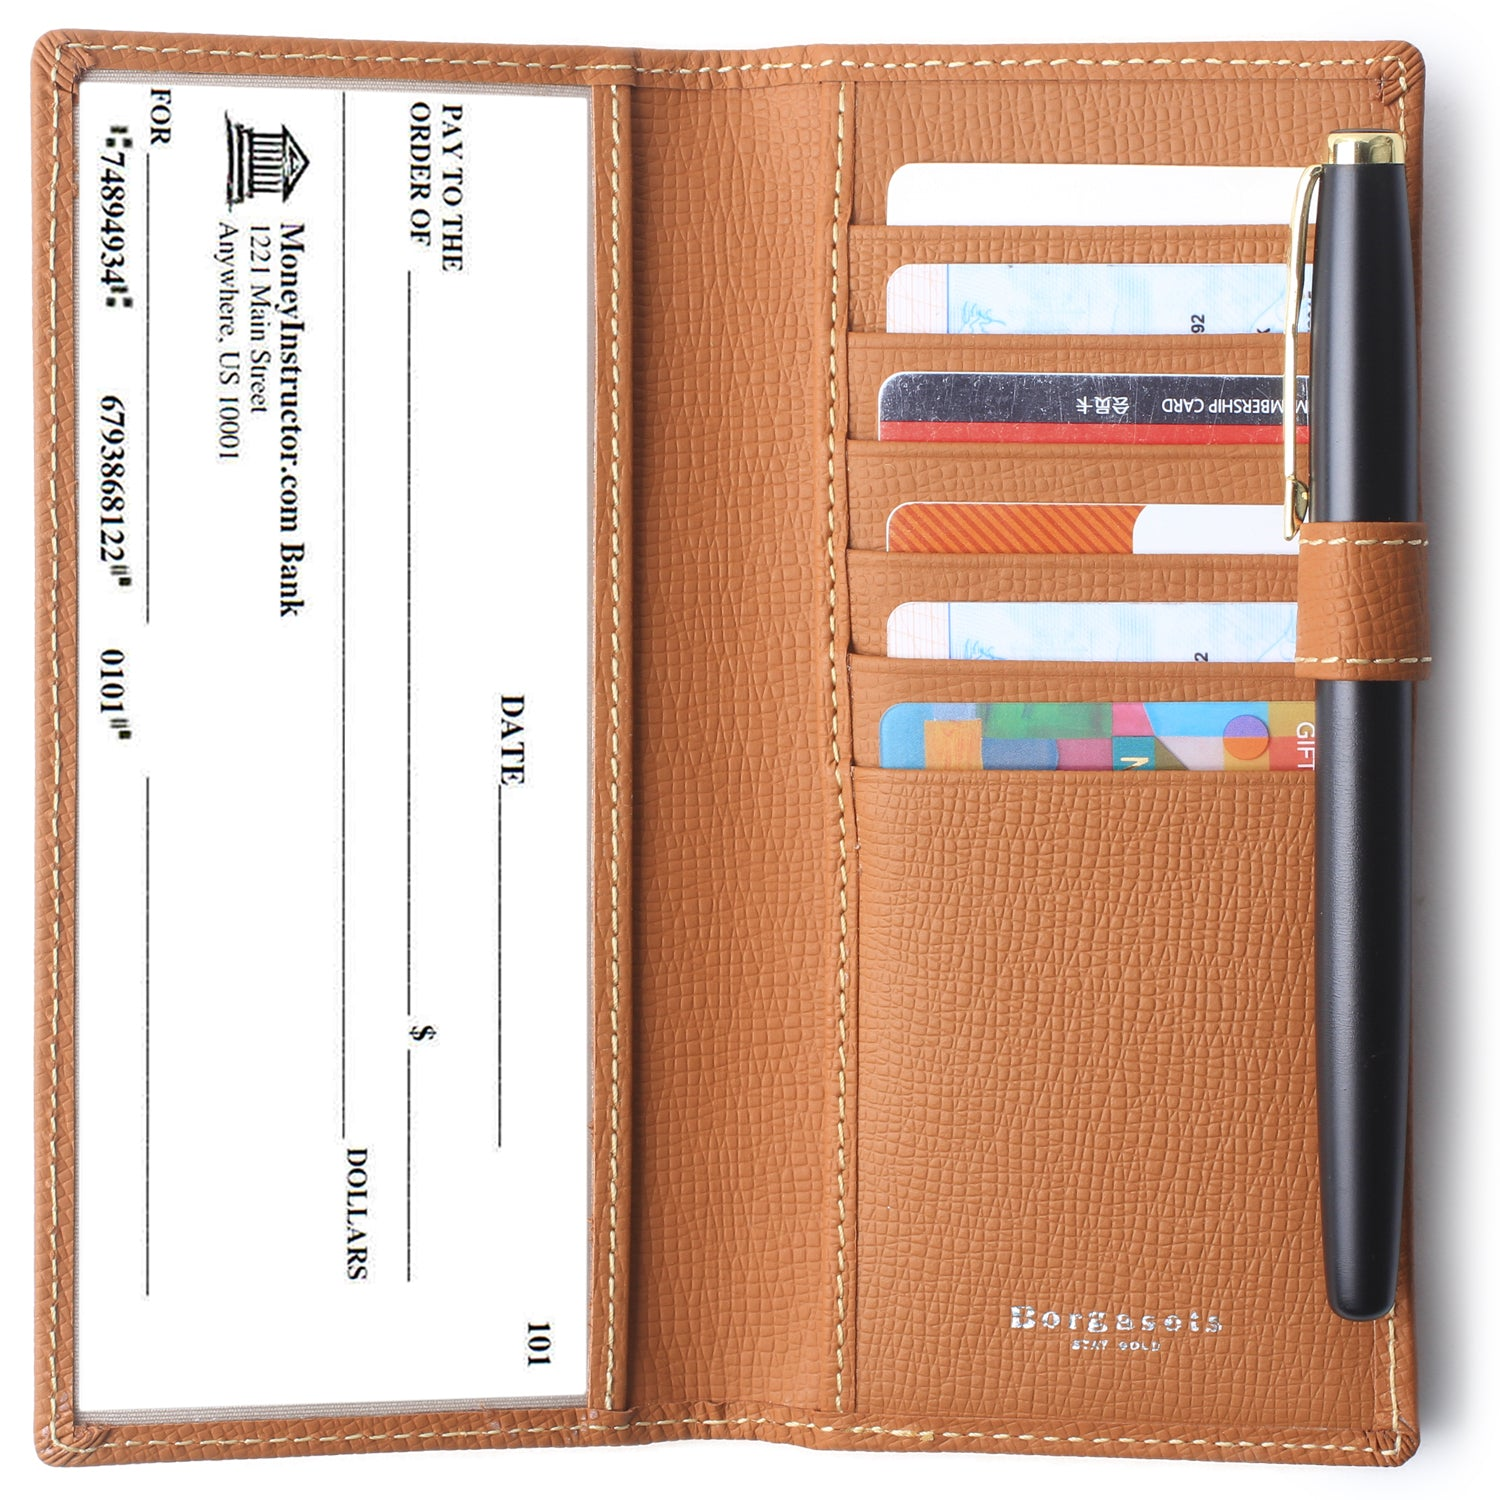 Leather Checkbook Cover For Men Women Checkbook Covers with Card Holder Wallet Brown - Borgasets